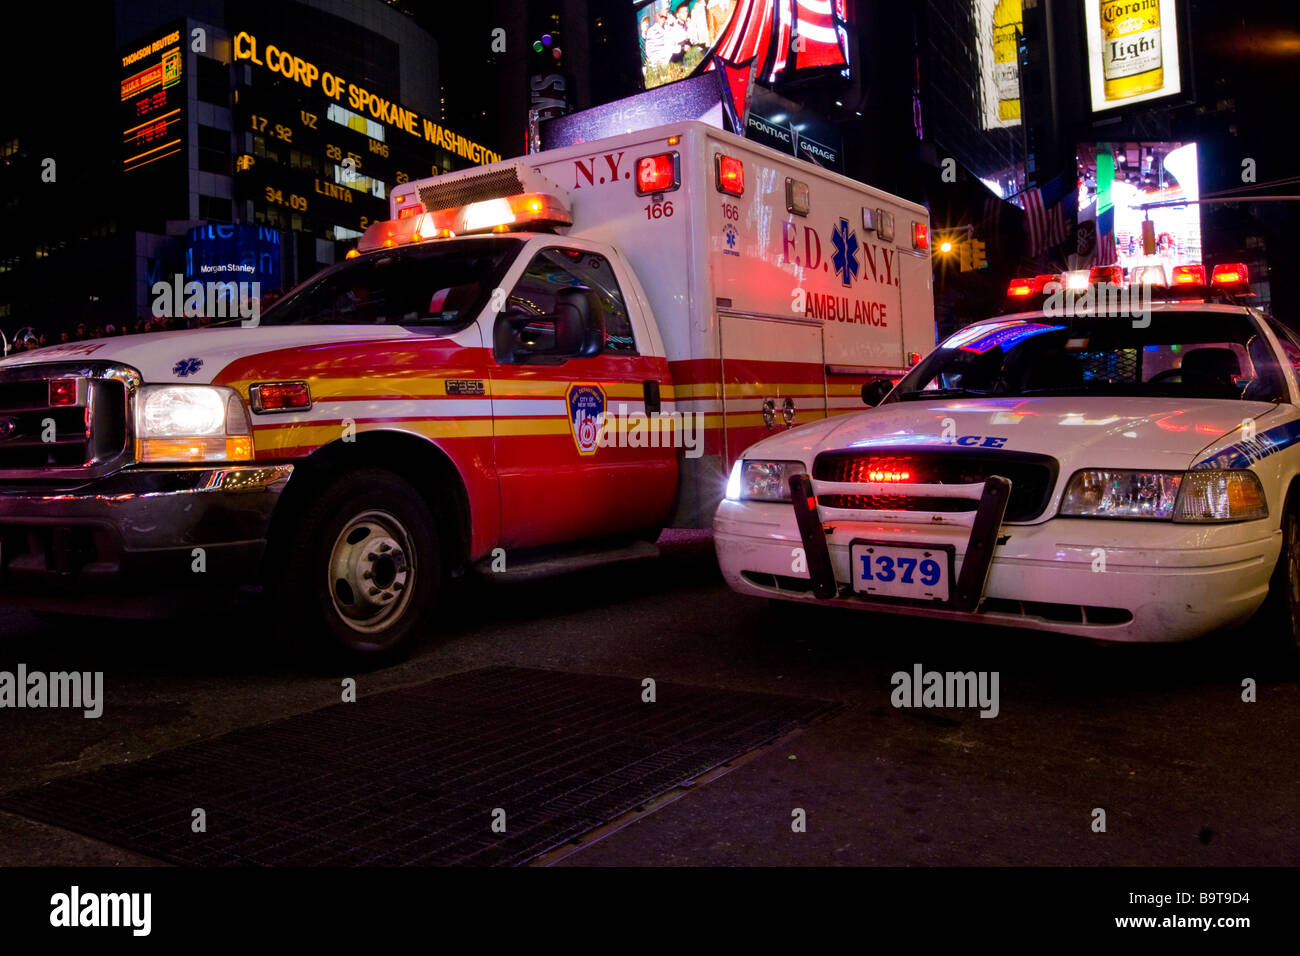 New York Ambulance and New York Police Car deal with an Emergancy at Times Square, New York City, USA - Stock Image